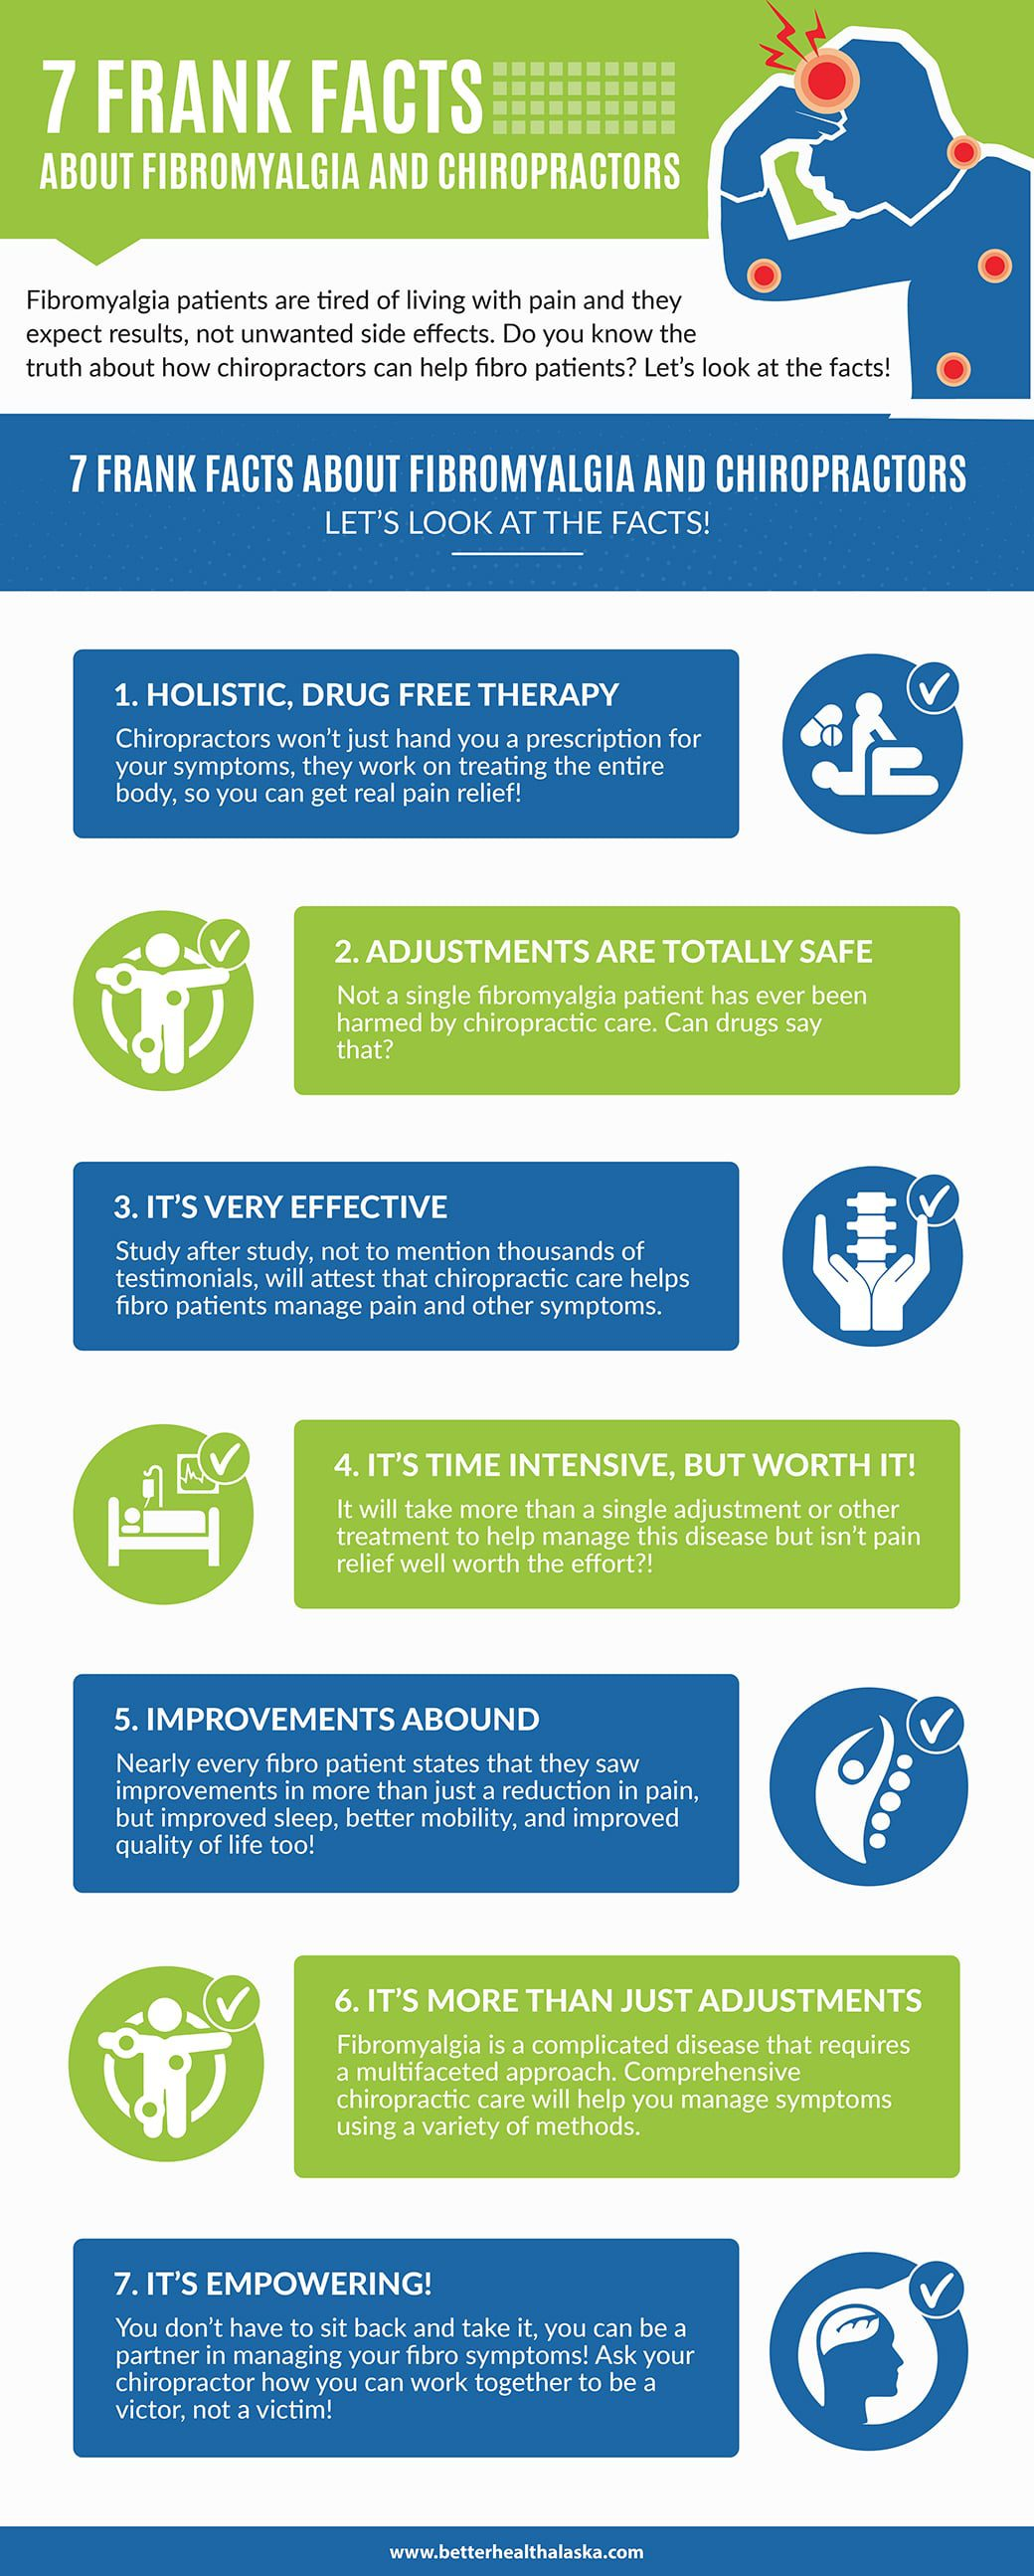 7 Truths about Chiropractic Every Fibromyalgia Patient Should Know Infographic